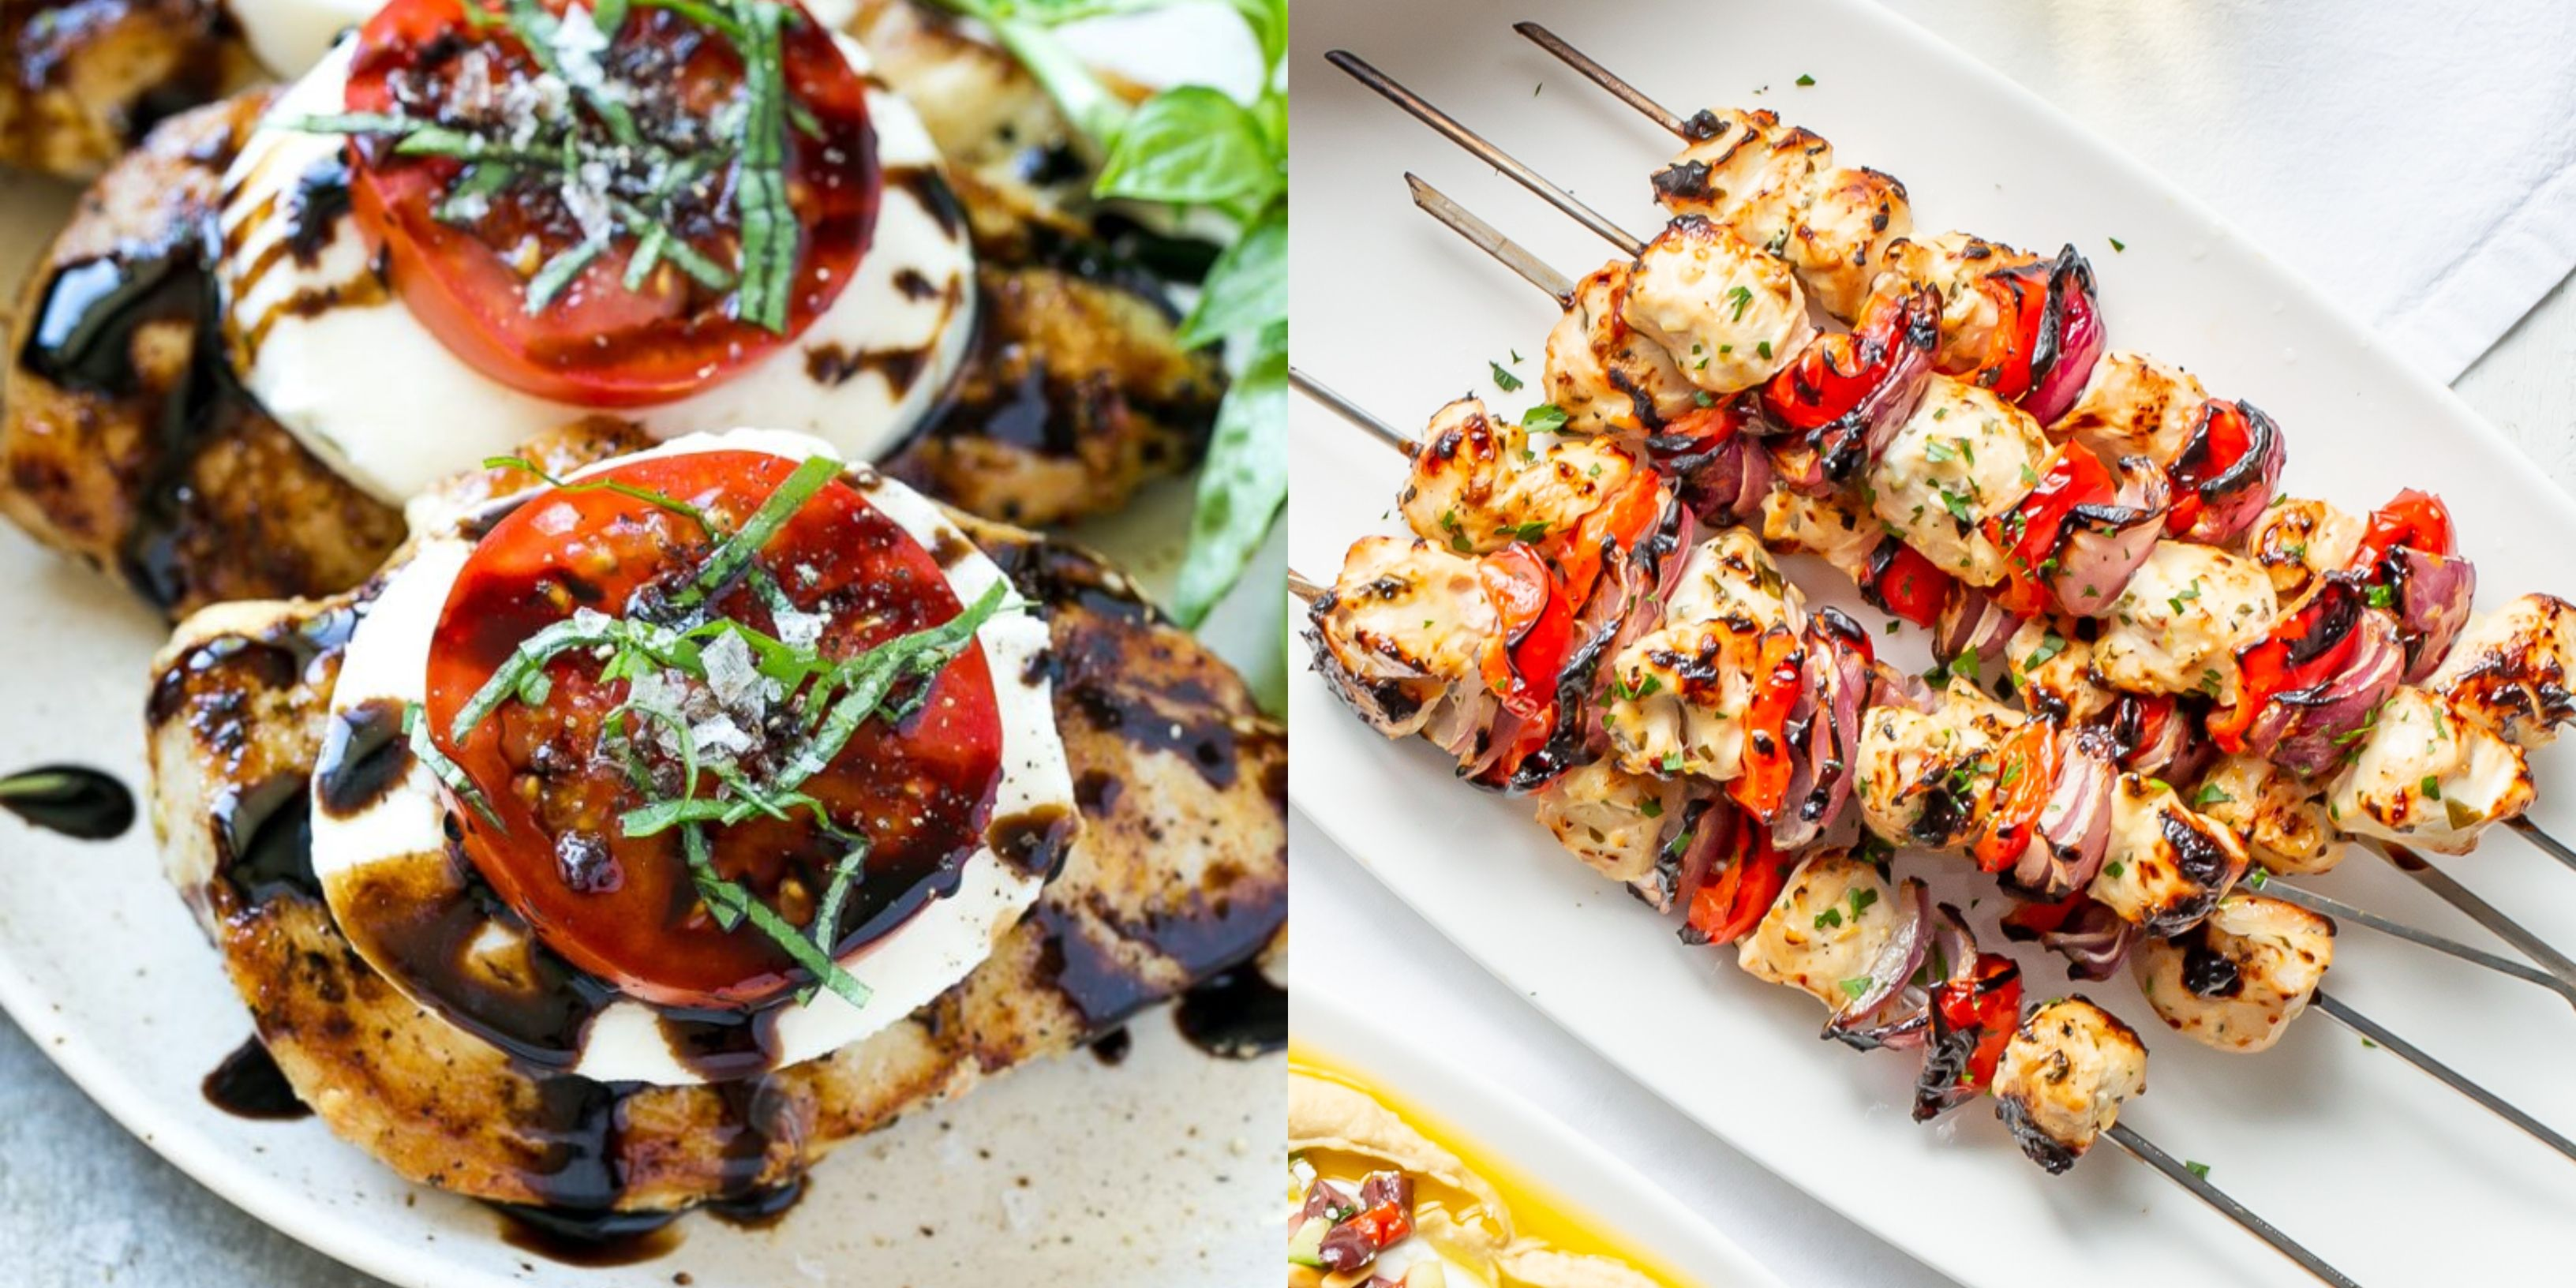 90 Best Summer Grilling Recipes Bbq Cookout Grilling Ideas